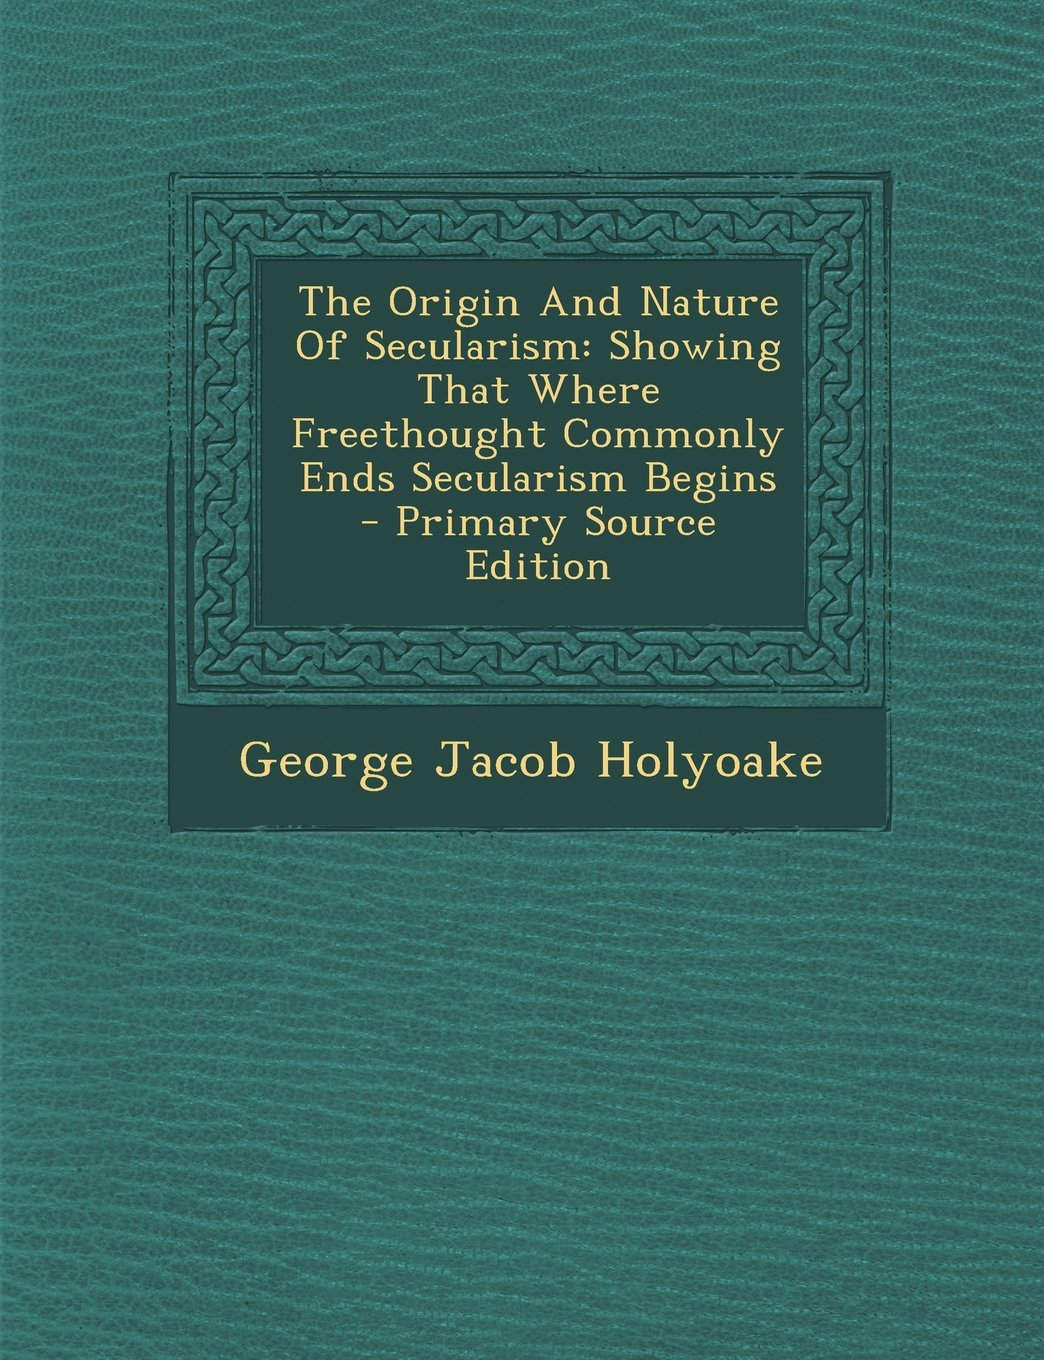 The Origin and Nature of Secularism: Showing That Where Freethought Commonly Ends Secularism Begins - Primary Source Edition pdf